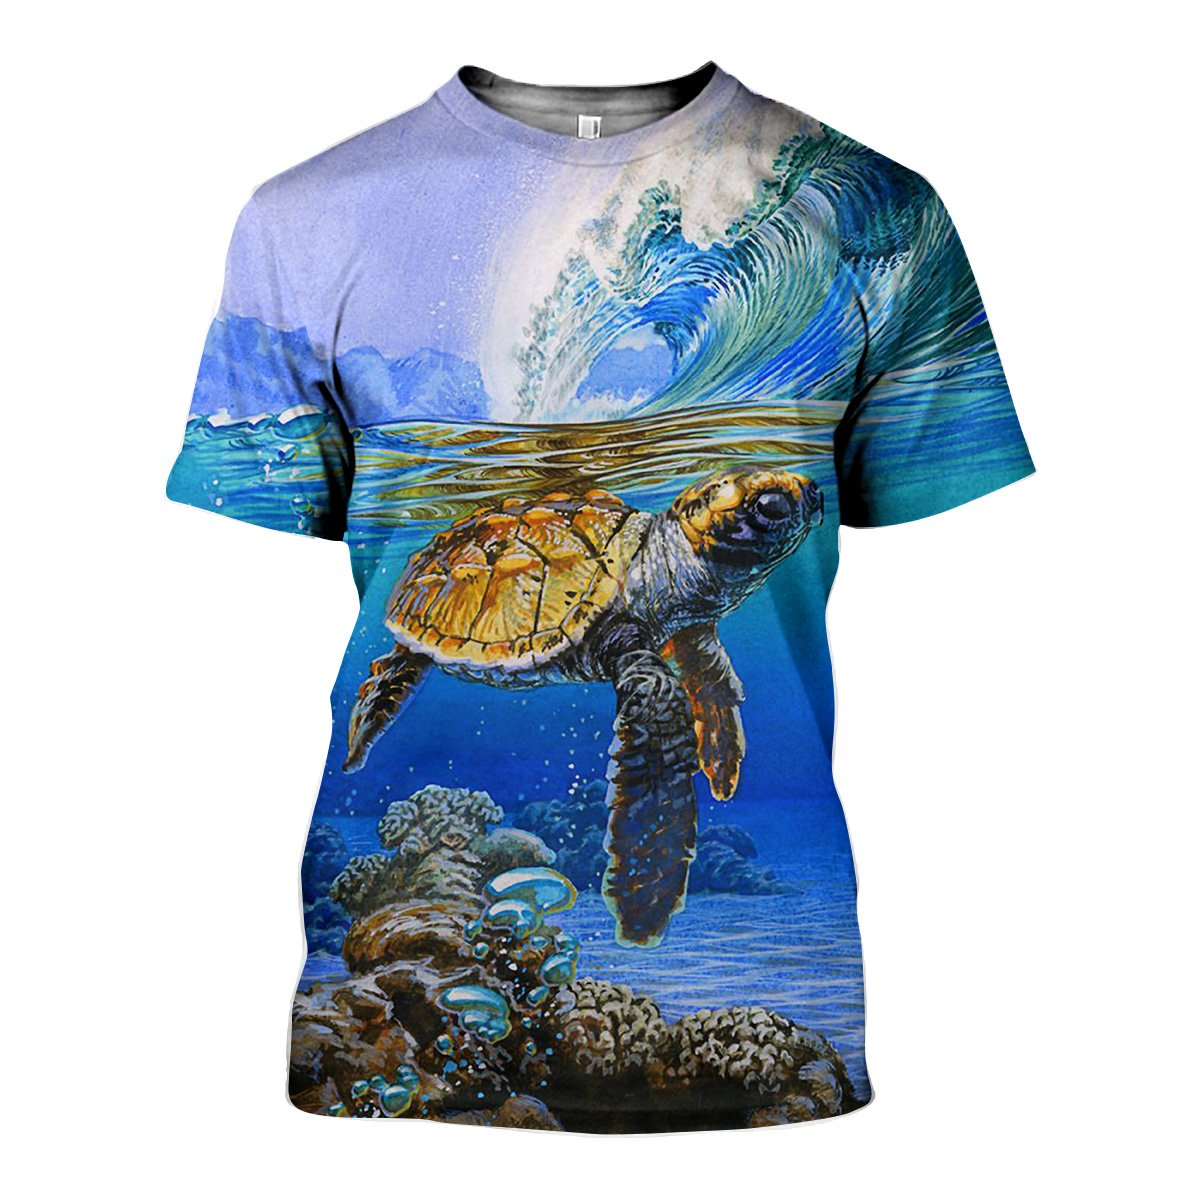 3D All Over Printed Turtle Shirts And Shorts